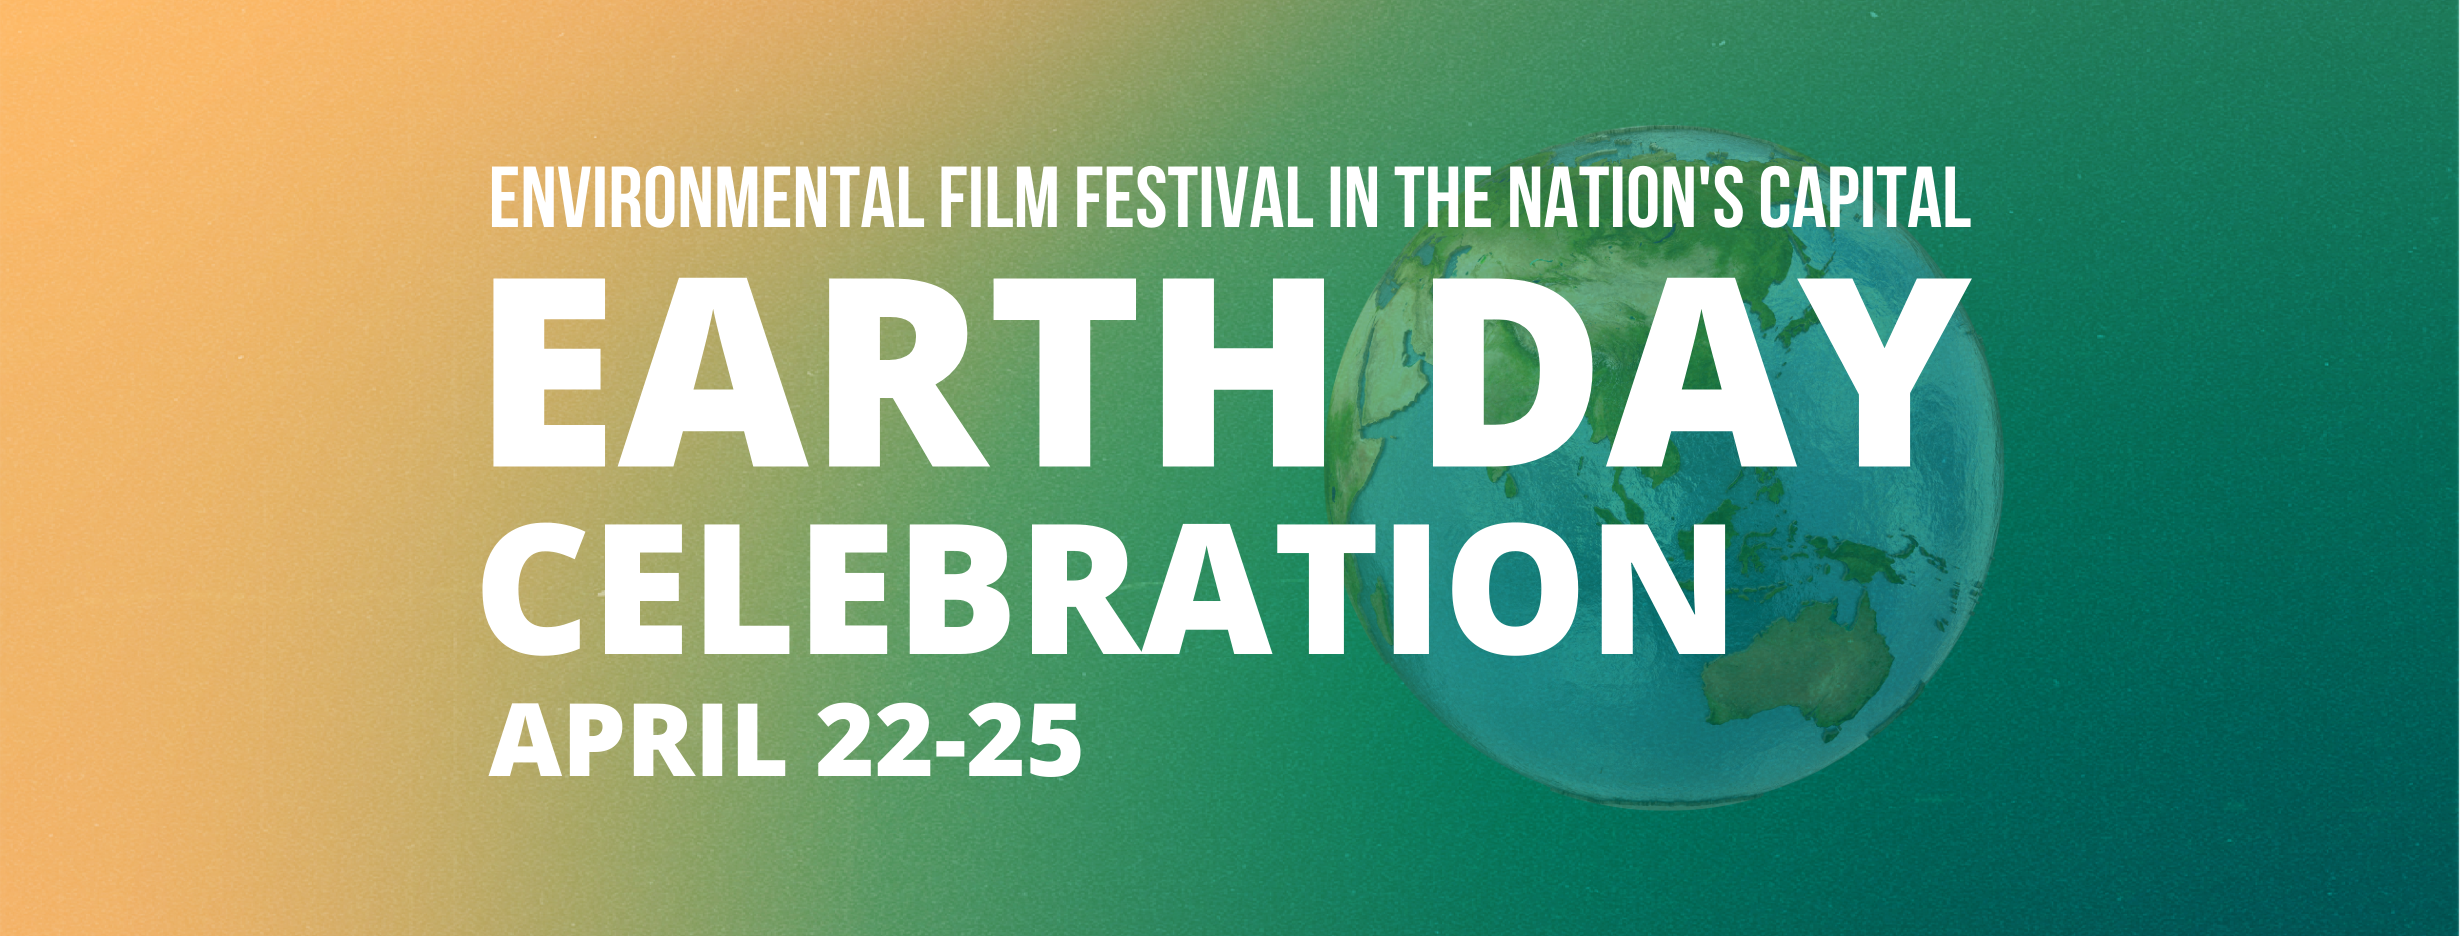 DCEFF: Earth Day Celebration